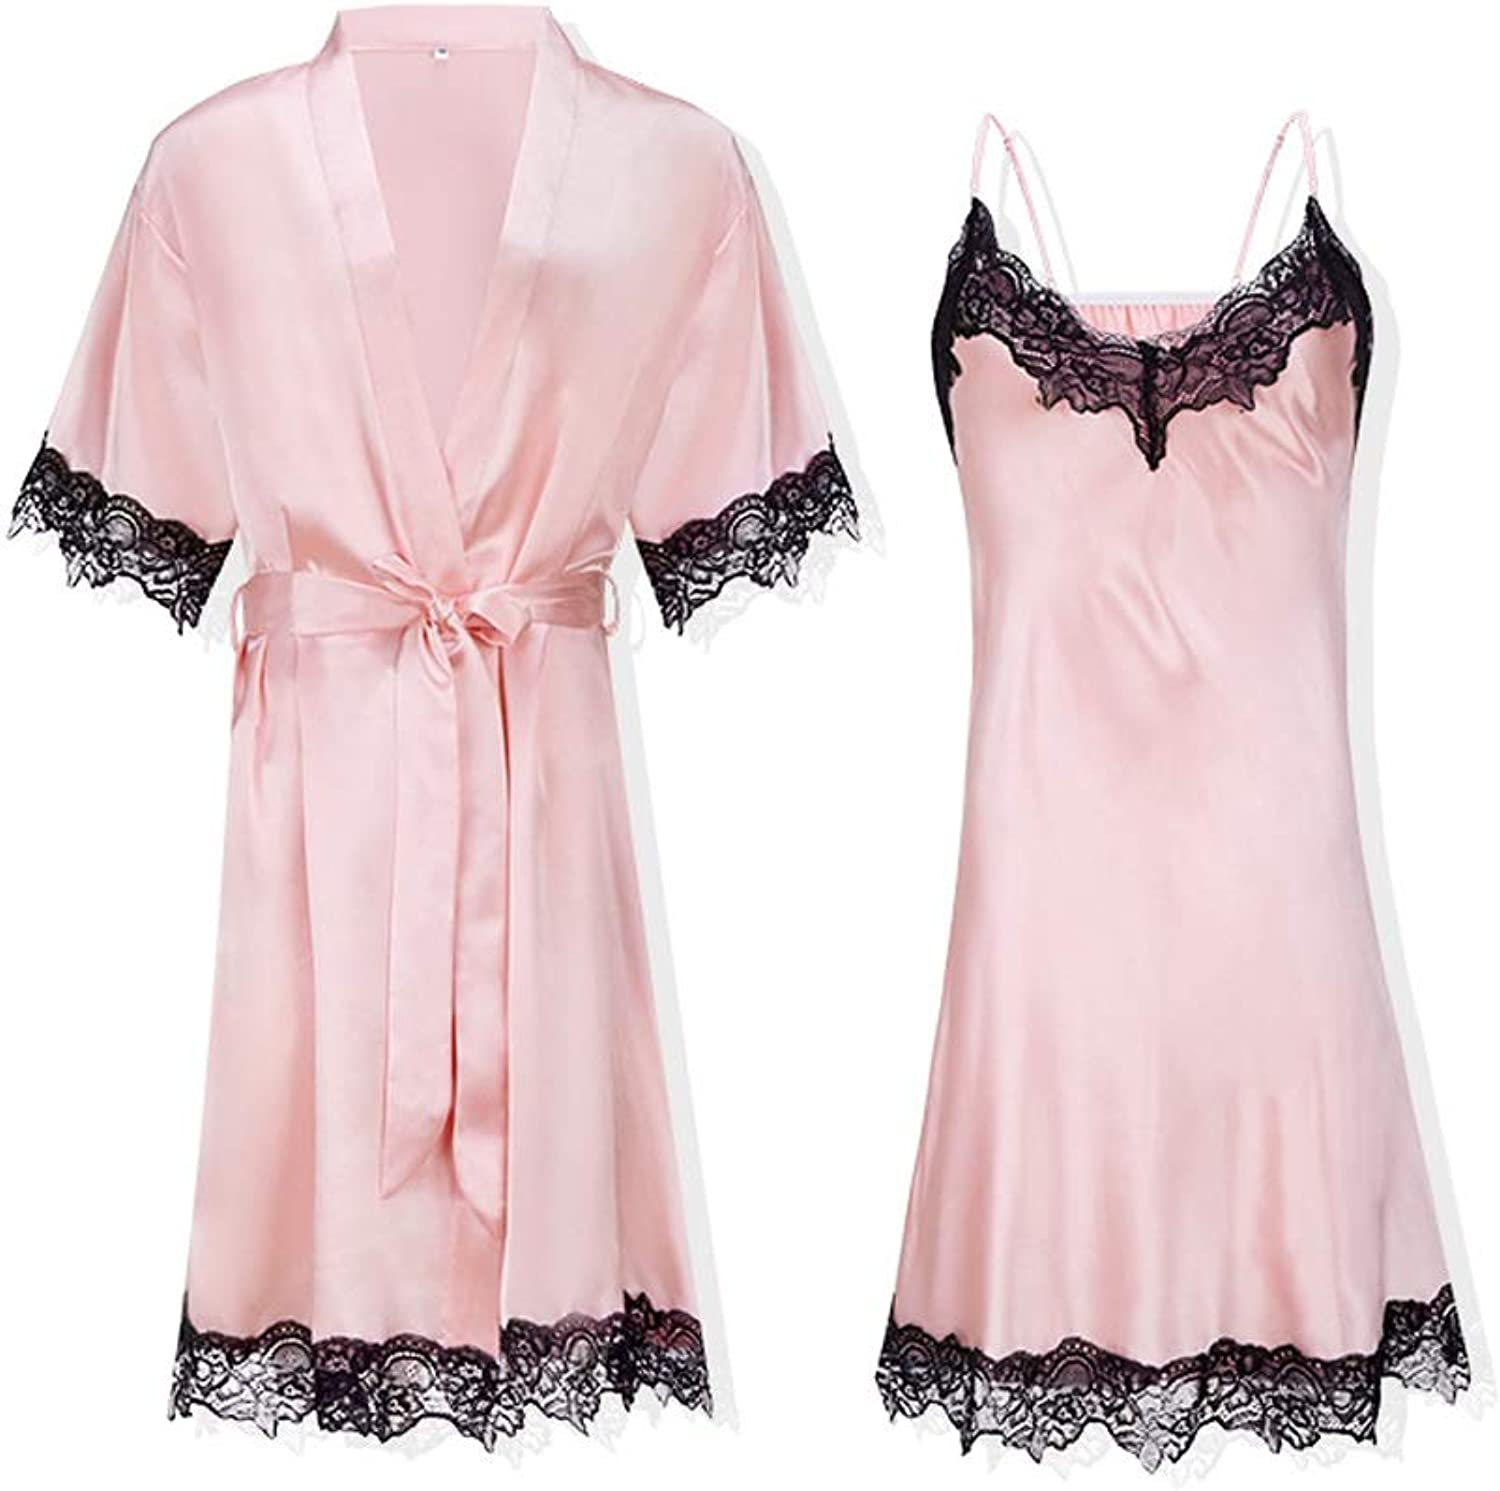 Home Service Women Simple European Style TwoPiece Nightdress Summer Ice Silk Sexy Bathrobe Spring and Autumn Thin Nightdress Lace Gathered Strap Nightdress (color   Pink, Size   L)